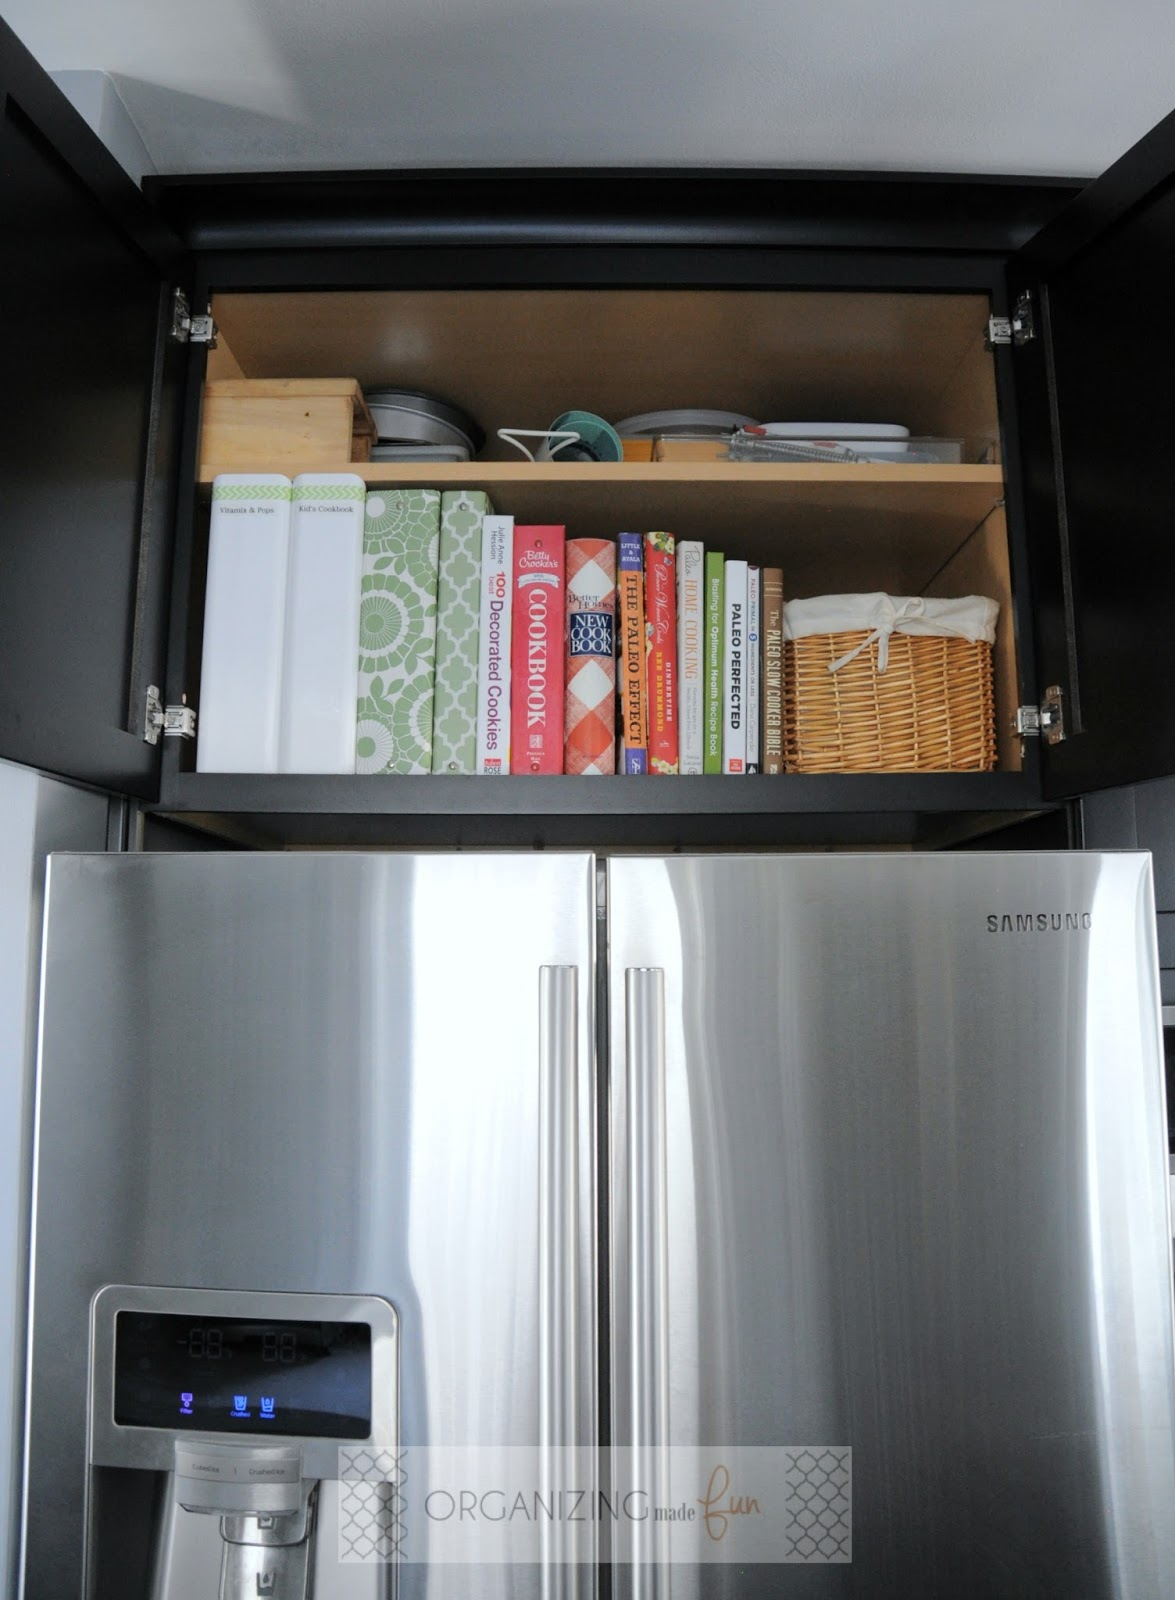 How to Organize Kitchen Cupboards  Organizing Made Fun